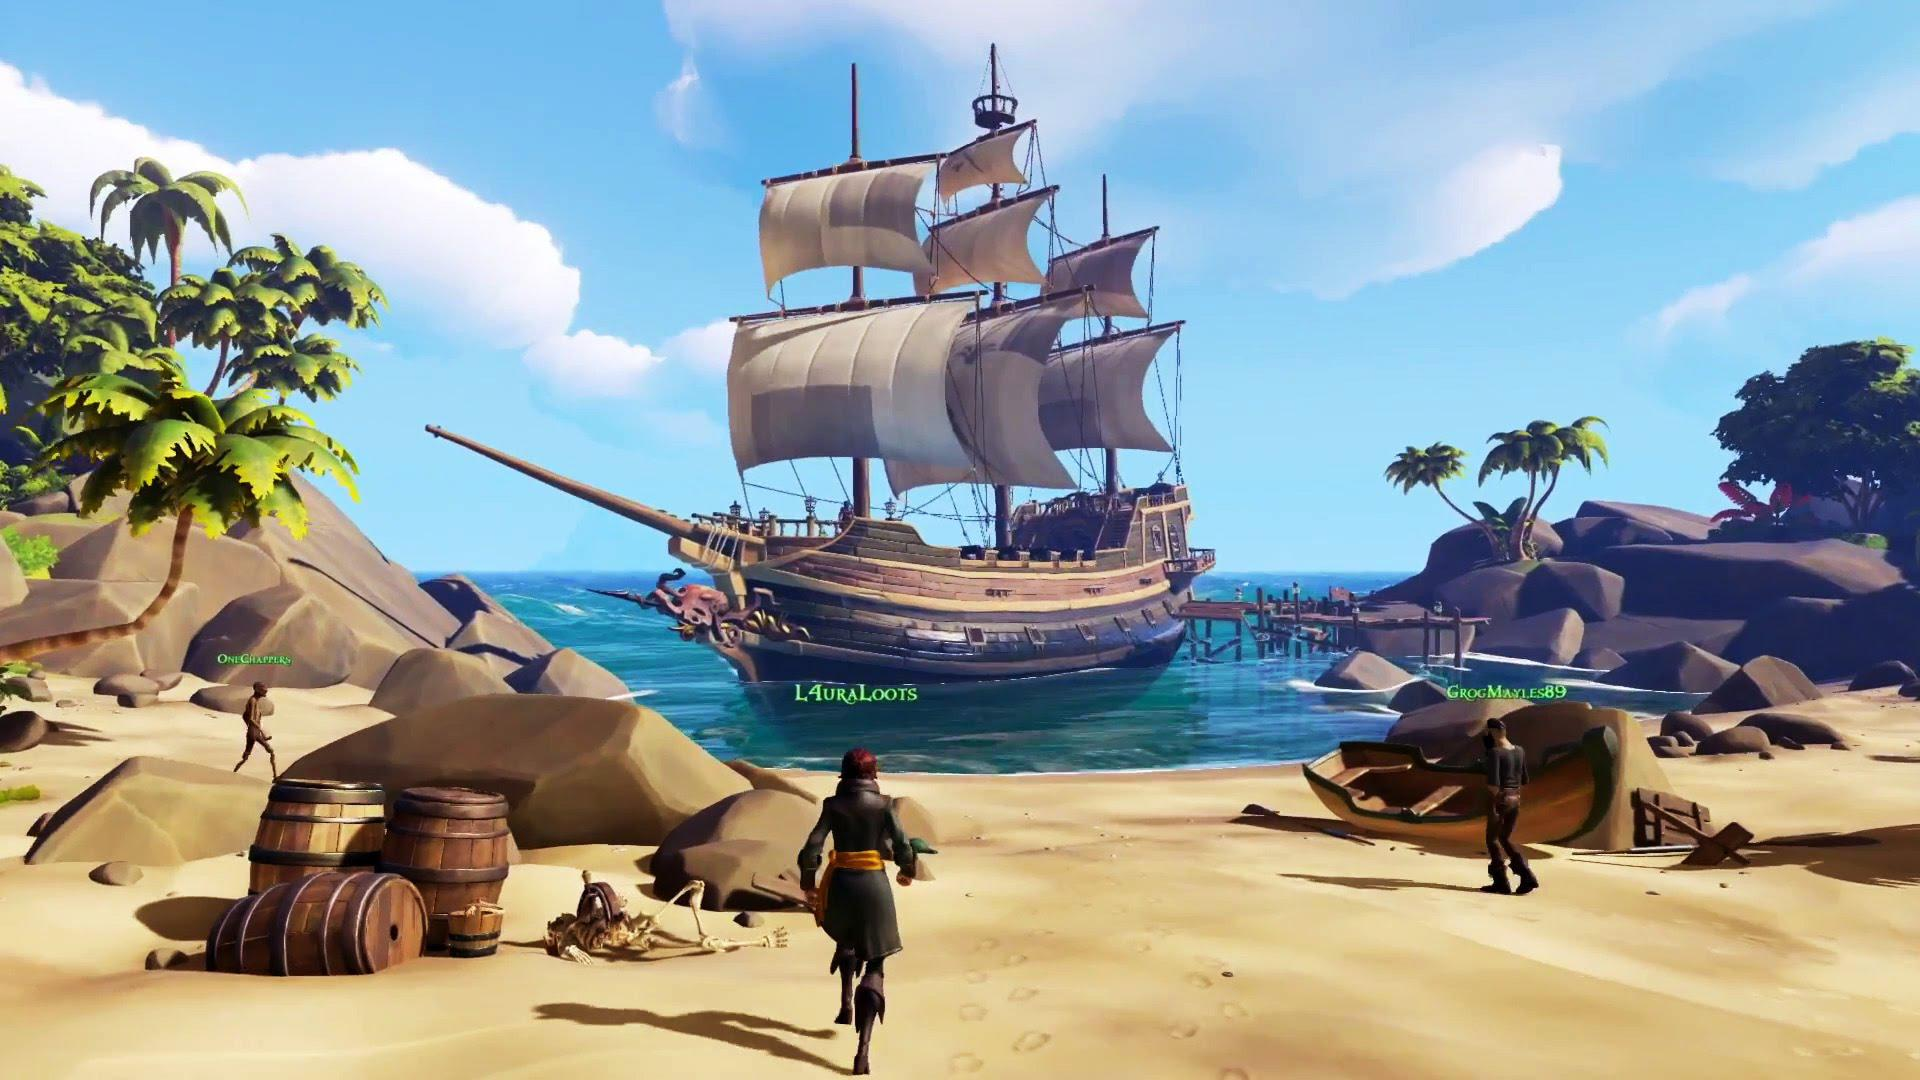 Rare, who were behind GoldenEye and Perfect Dark, will hope Sea of Thieves is a hit with gamers